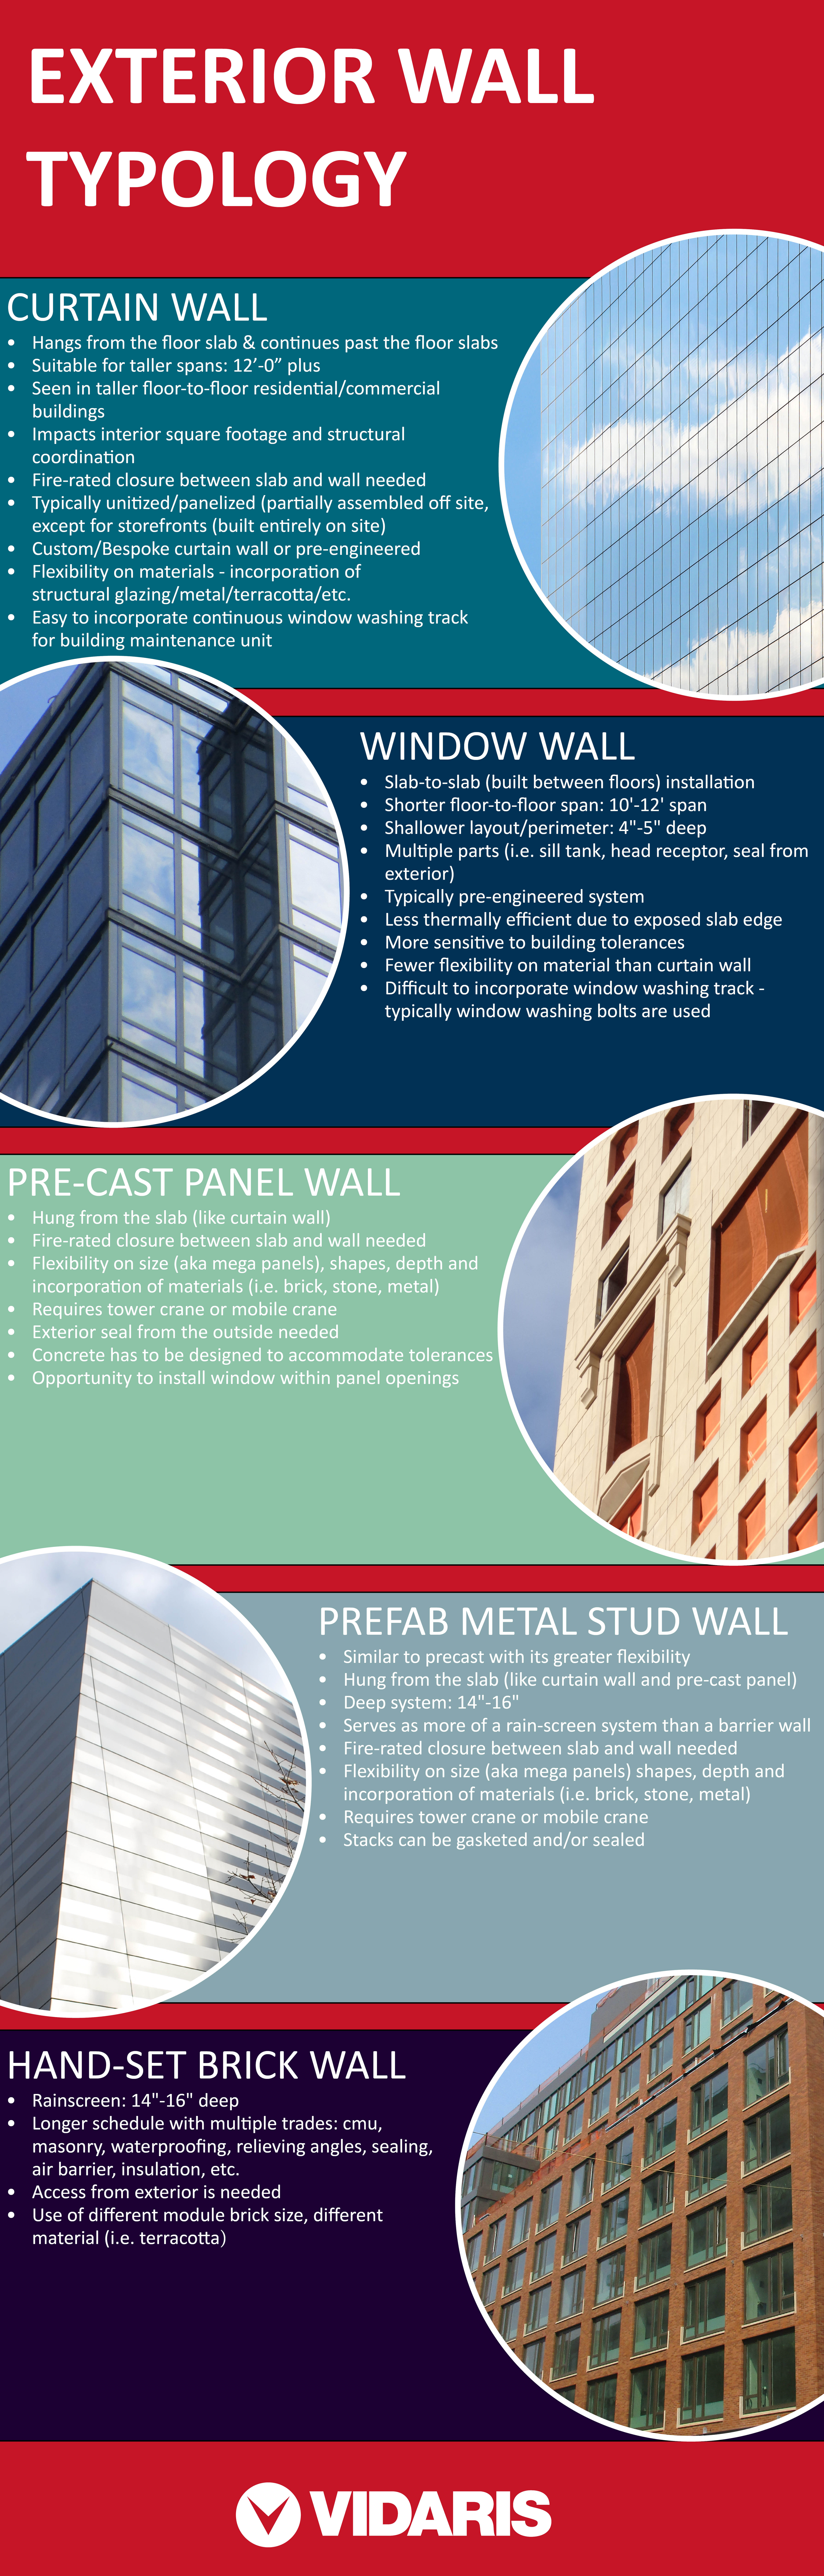 Exterior Wall Typology Infographic.jpg